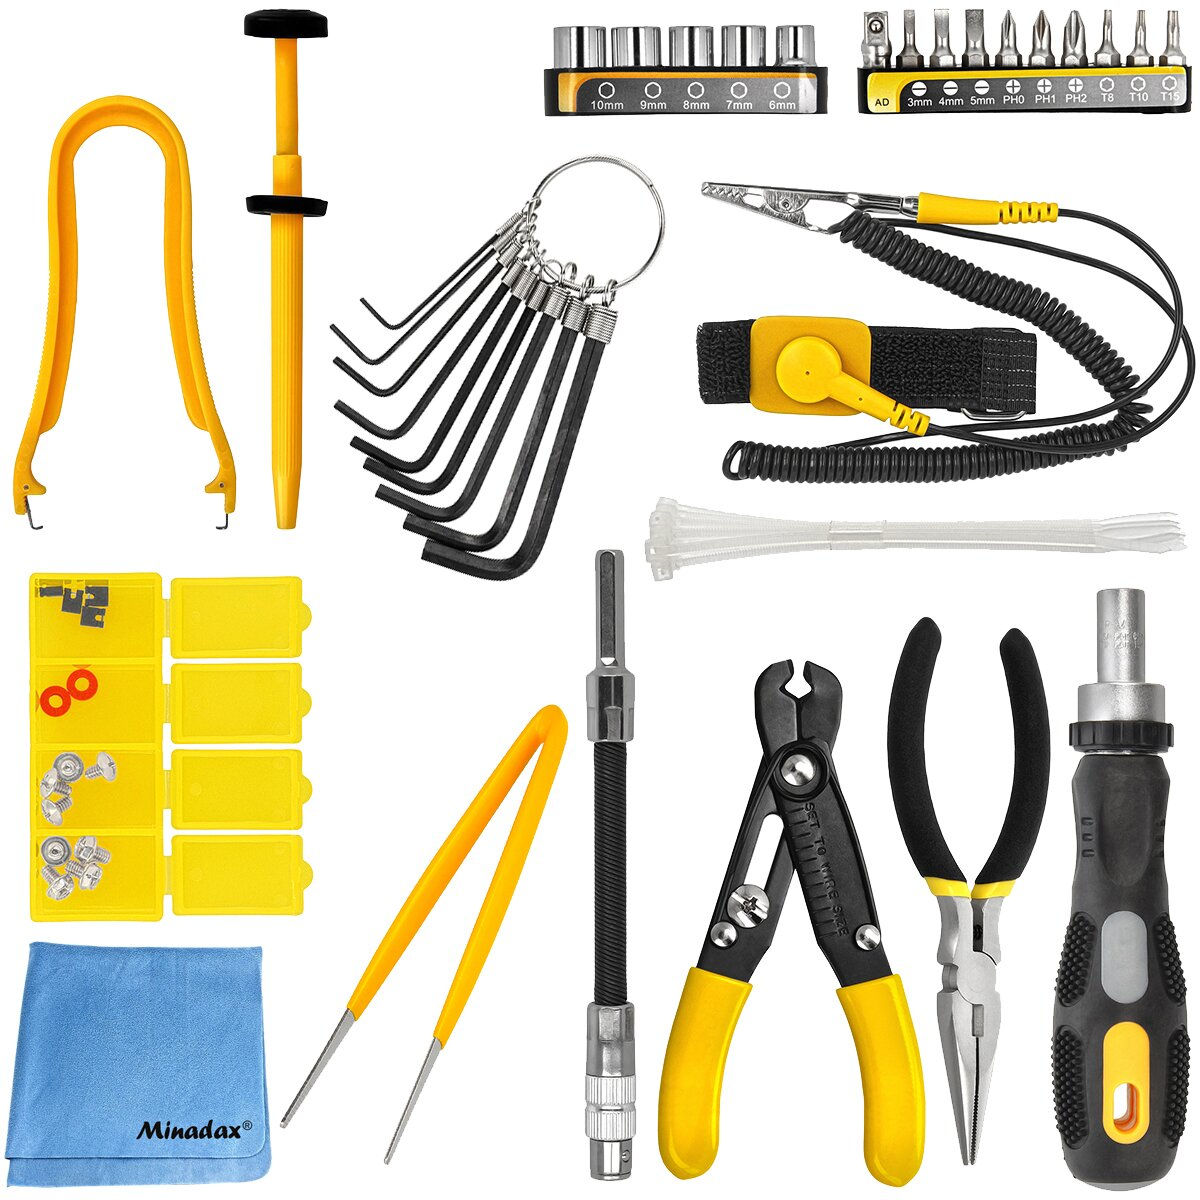 Sprotek 43 PIECE Computer Tool Kit STK-8910